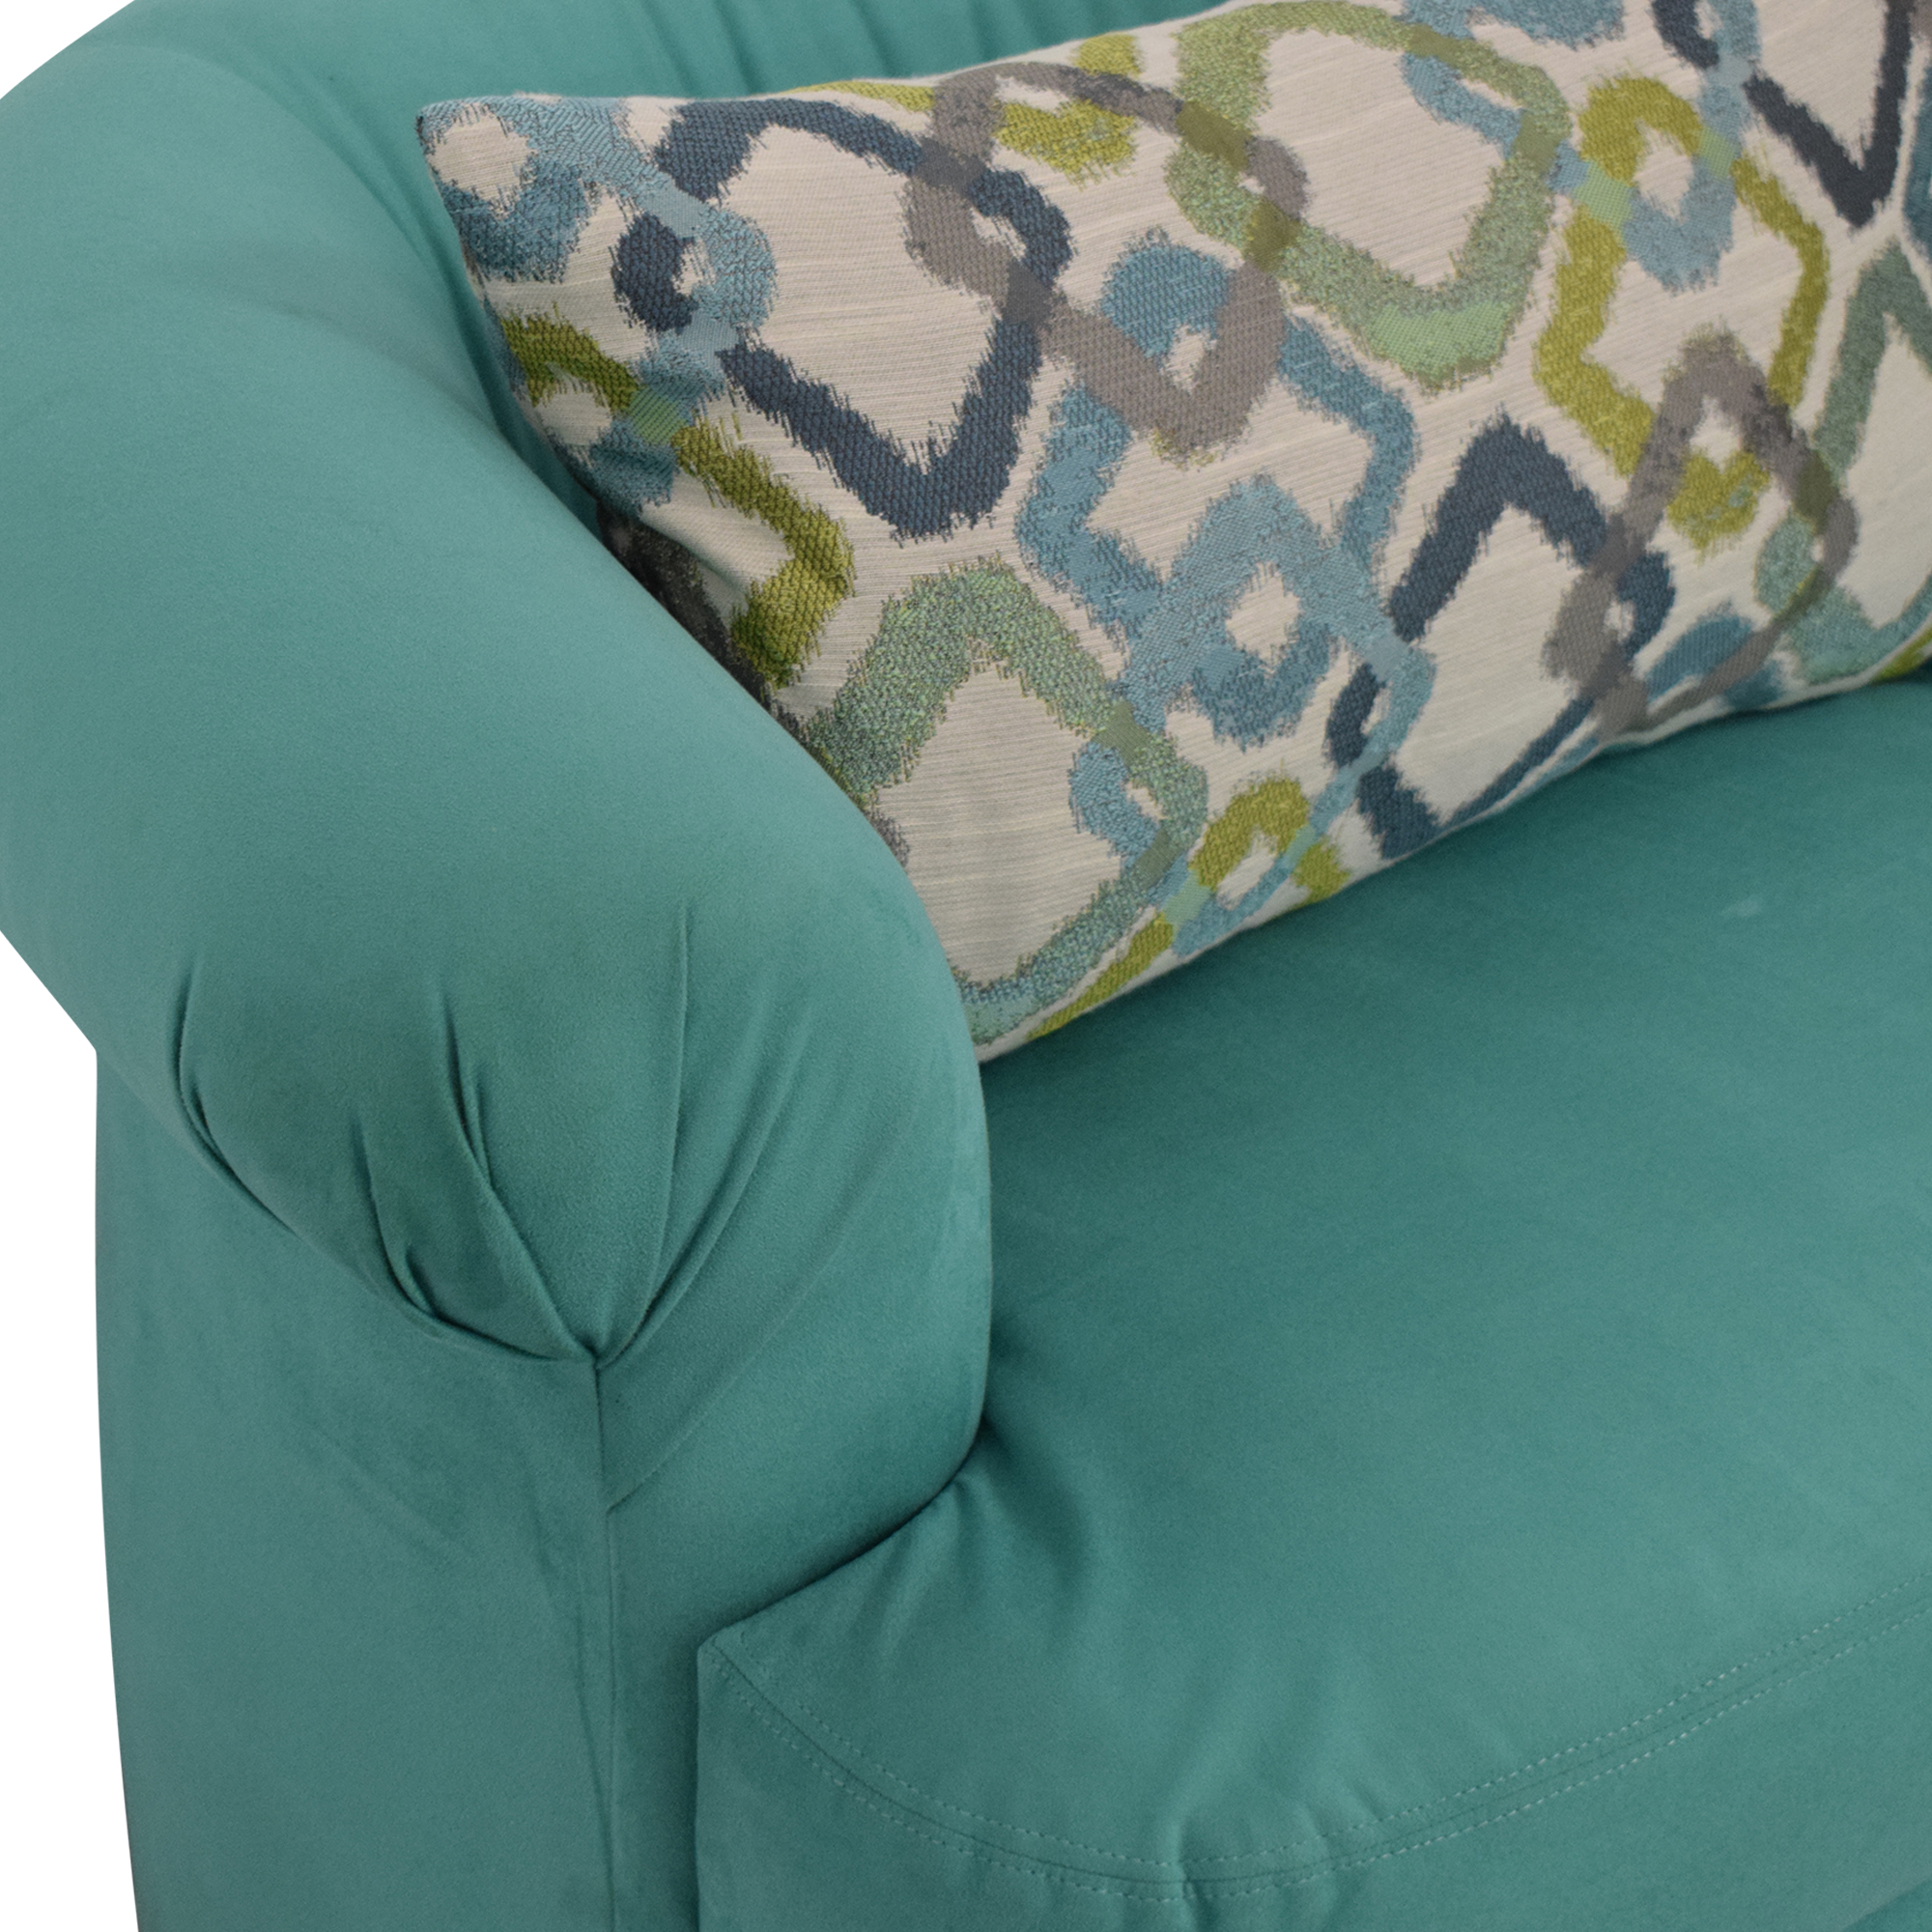 Directional Furniture Suede Chair / Chairs